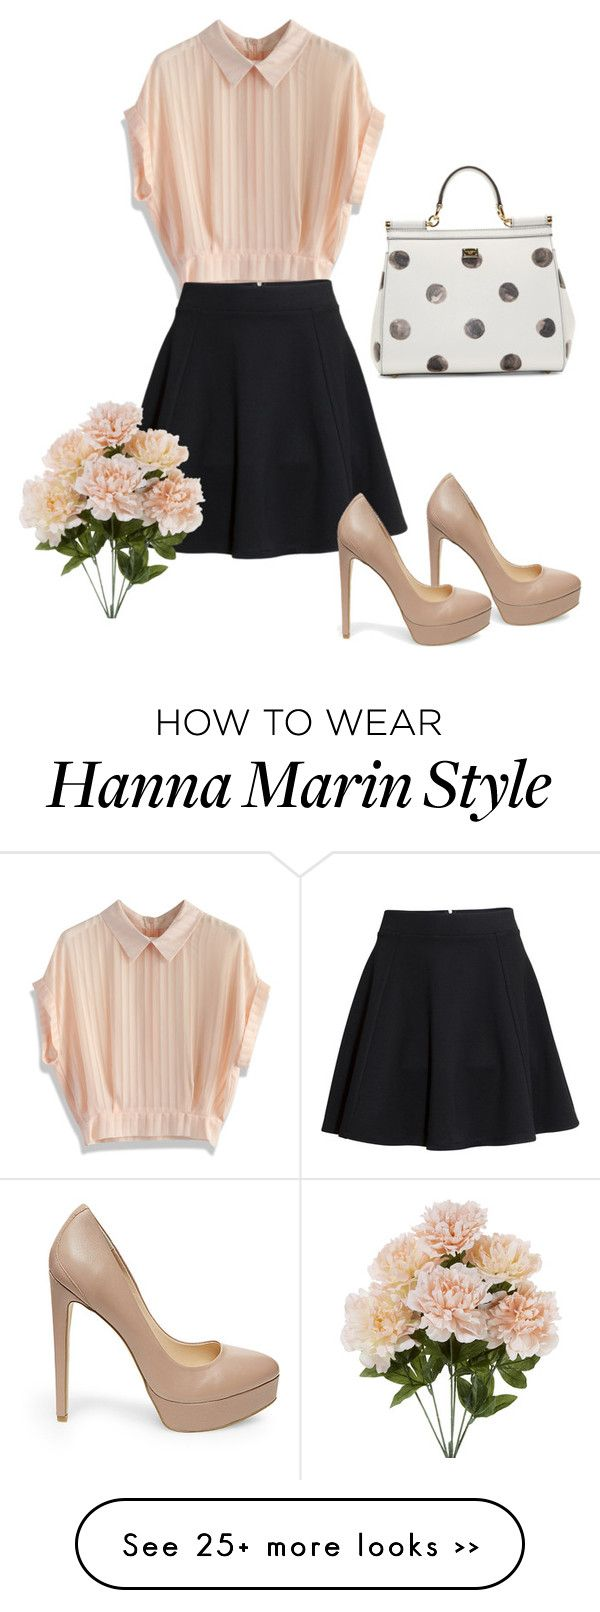 """Hanna Marin inspired outfit."" by laniegrace on Polyvore"